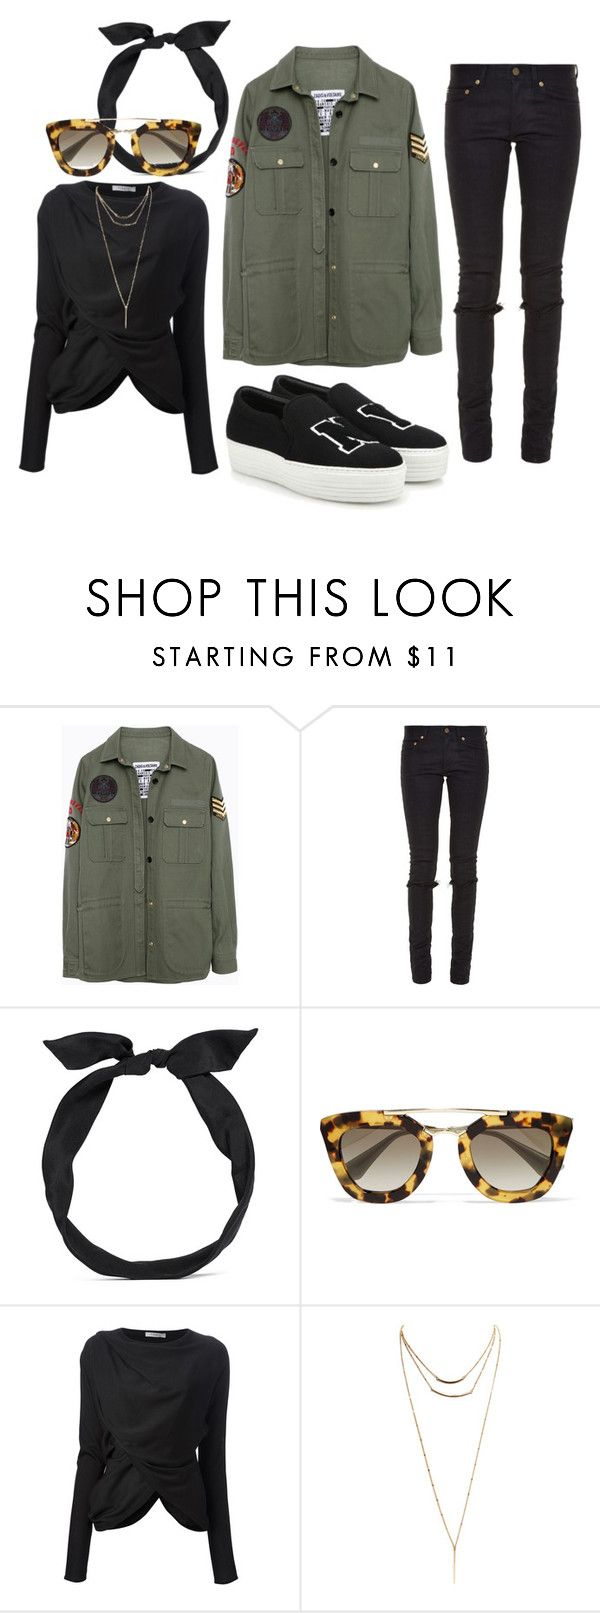 """""""Untitled #223"""" by fashiondisguise on Polyvore featuring Zadig & Voltaire, Yves Saint Laurent, yunotme, Prada, Givenchy, Wet Seal and Joshua's"""